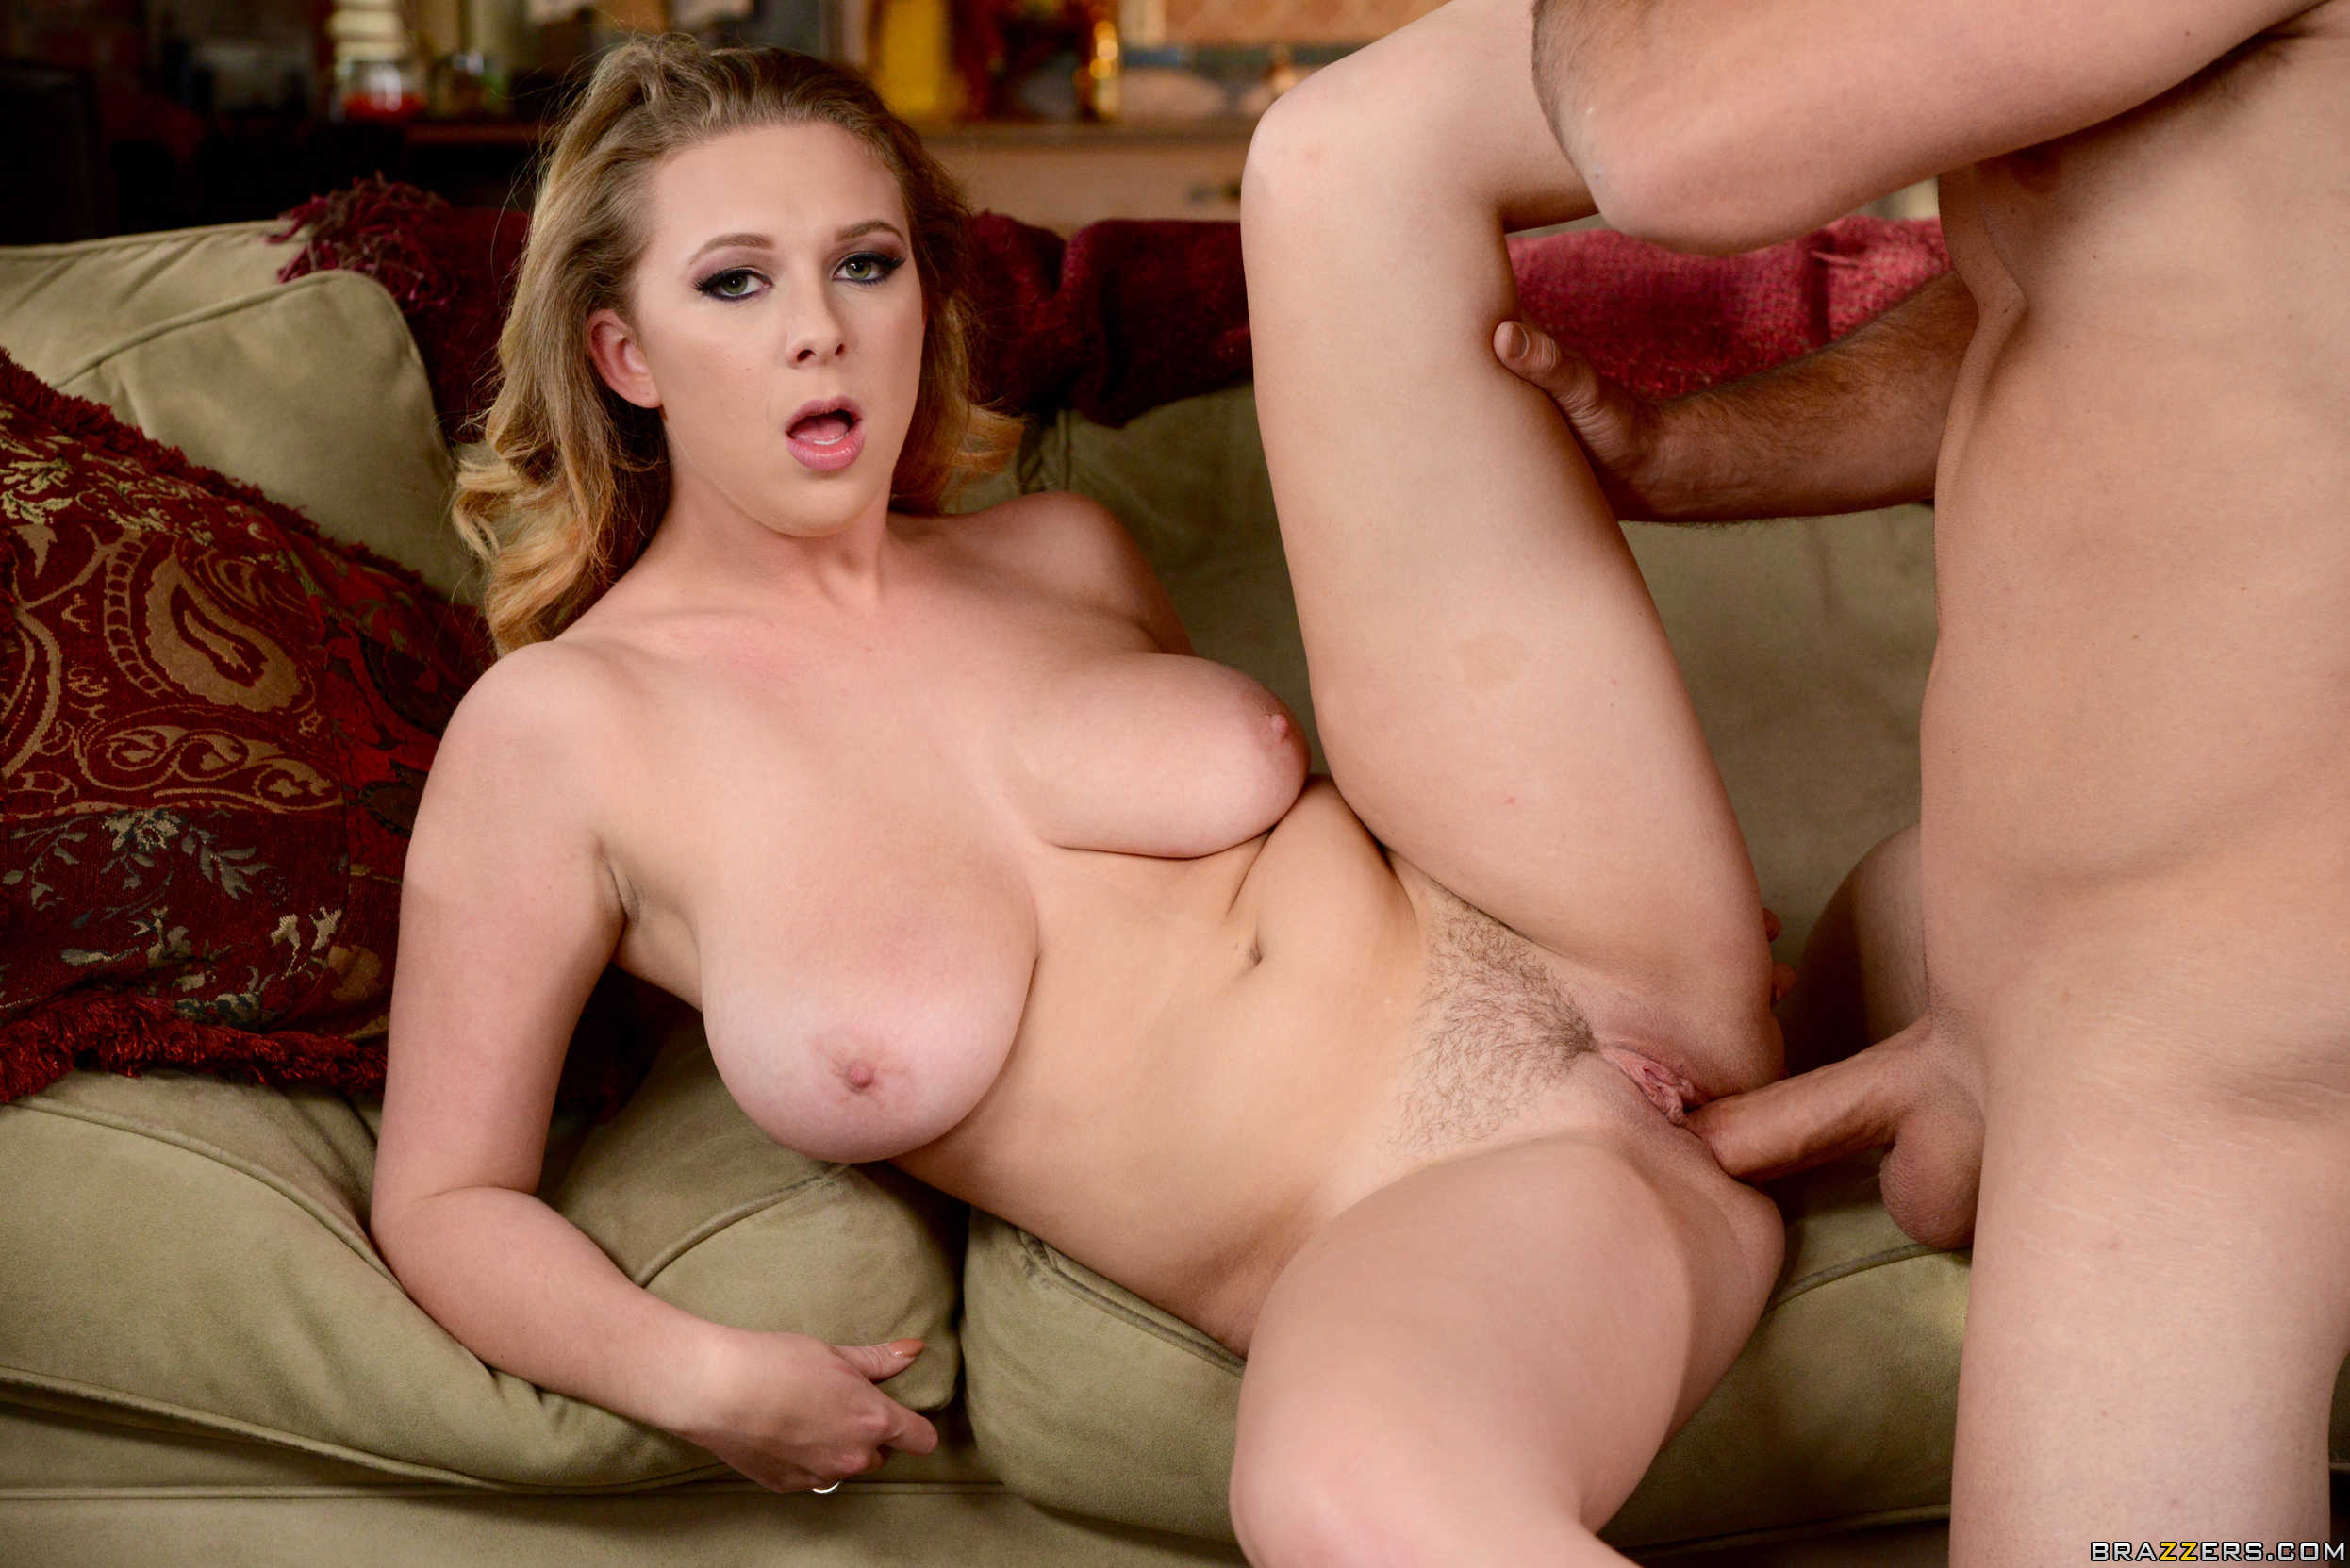 Mandi white chick black dick